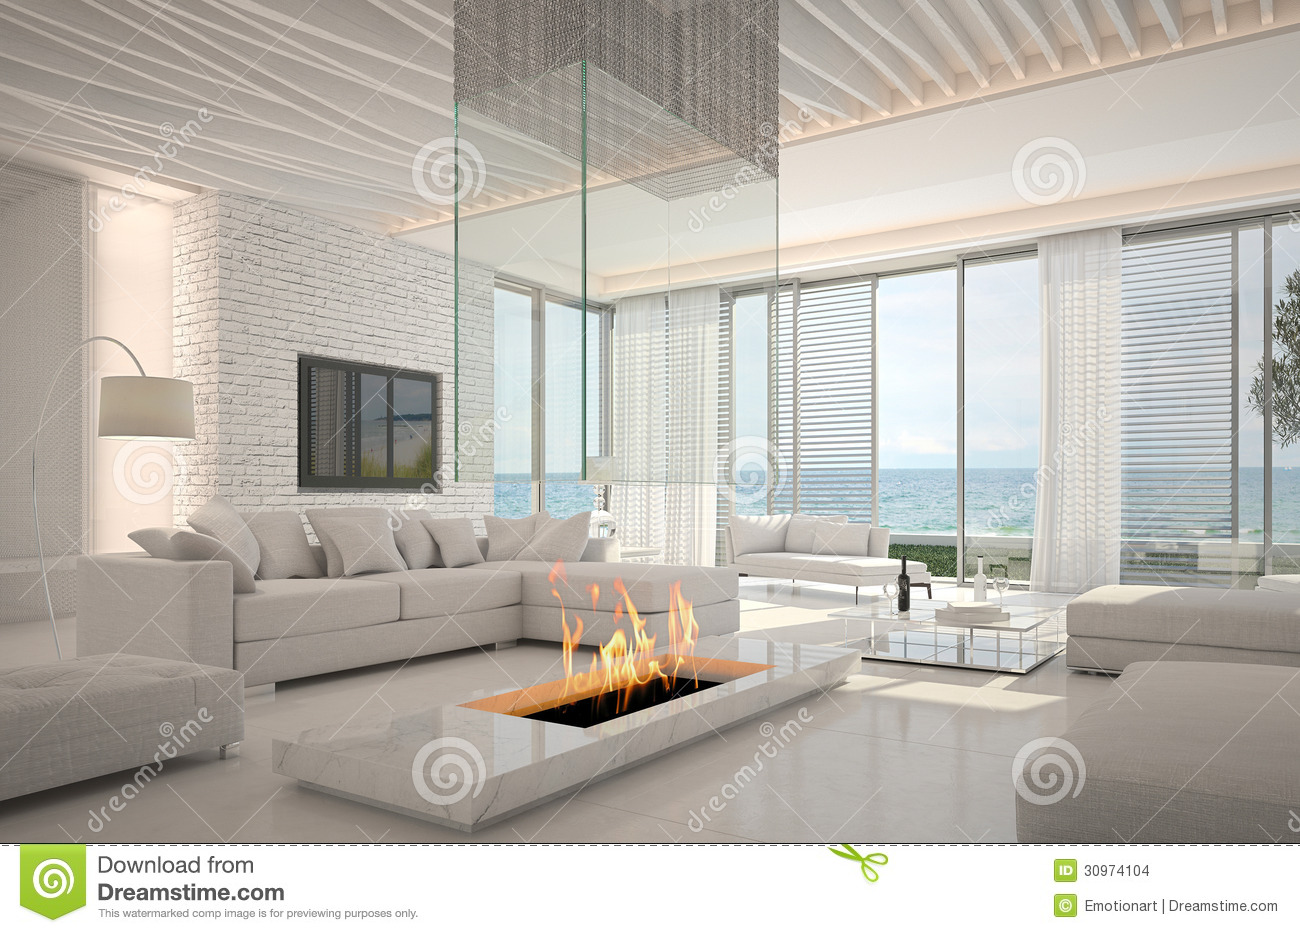 Amazing Loft Living Room Interior With Seascape View Stock